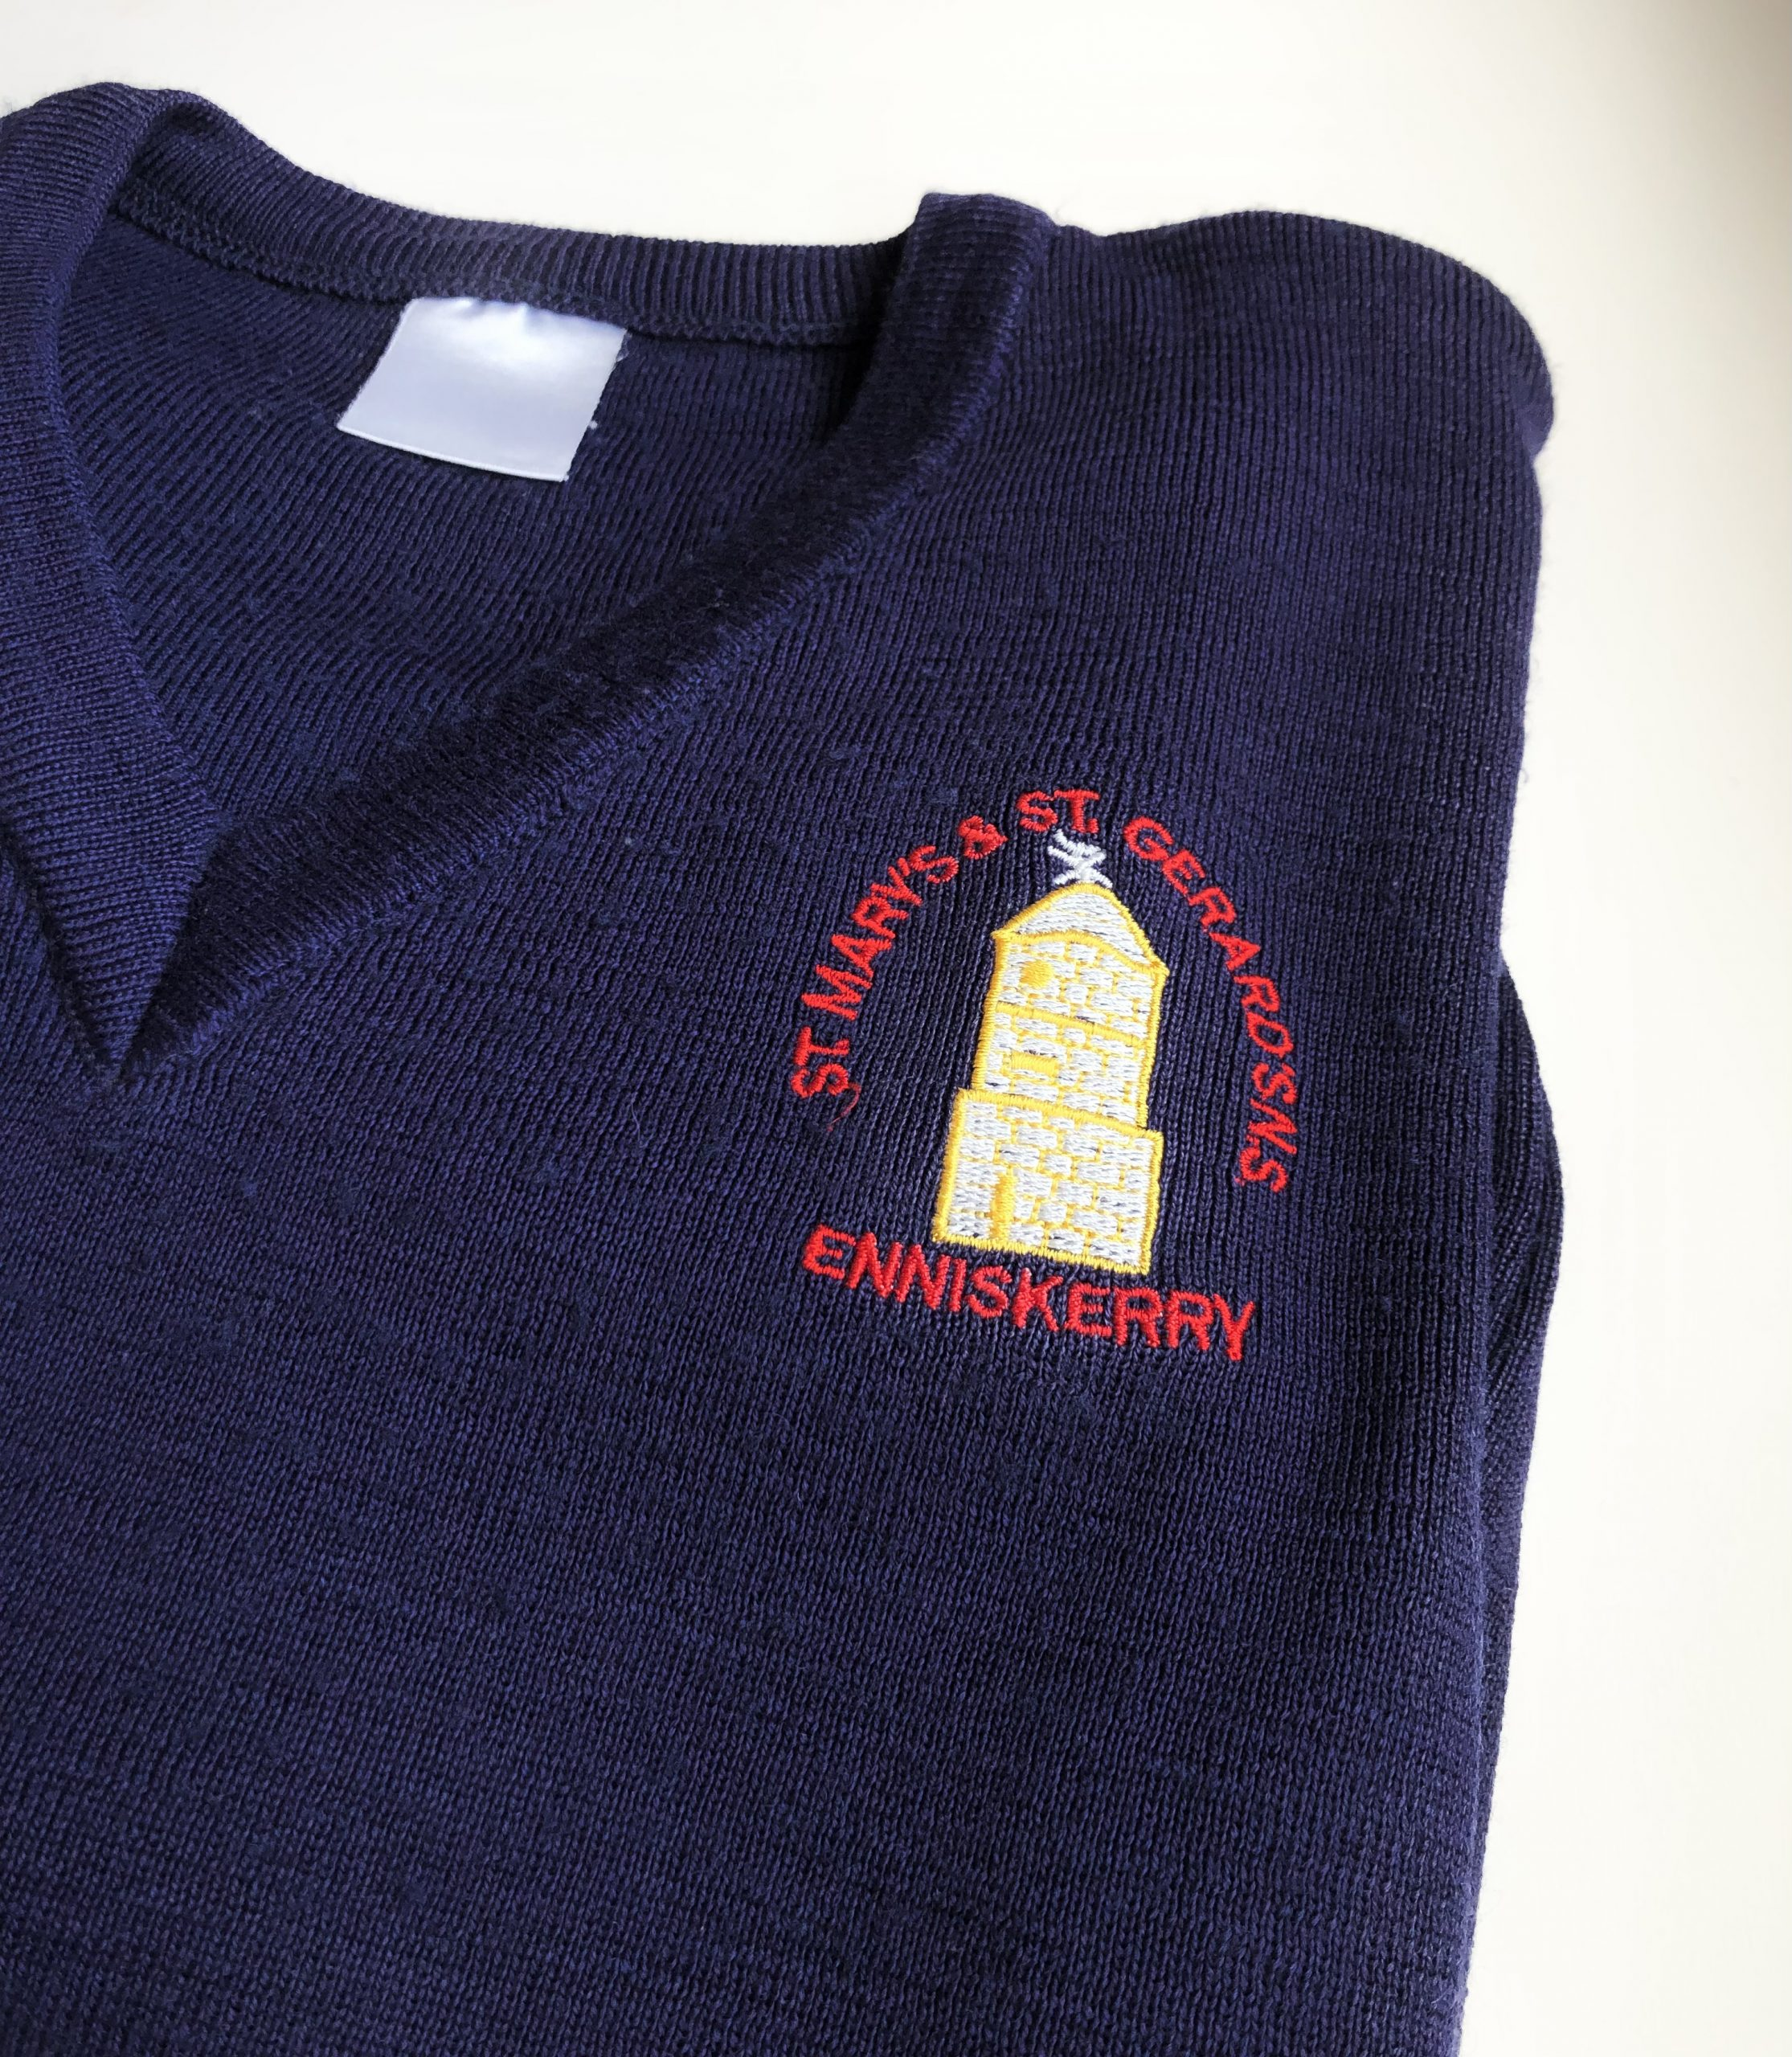 St Mary's and St Gerard's Enniskerry Uniform Jumper